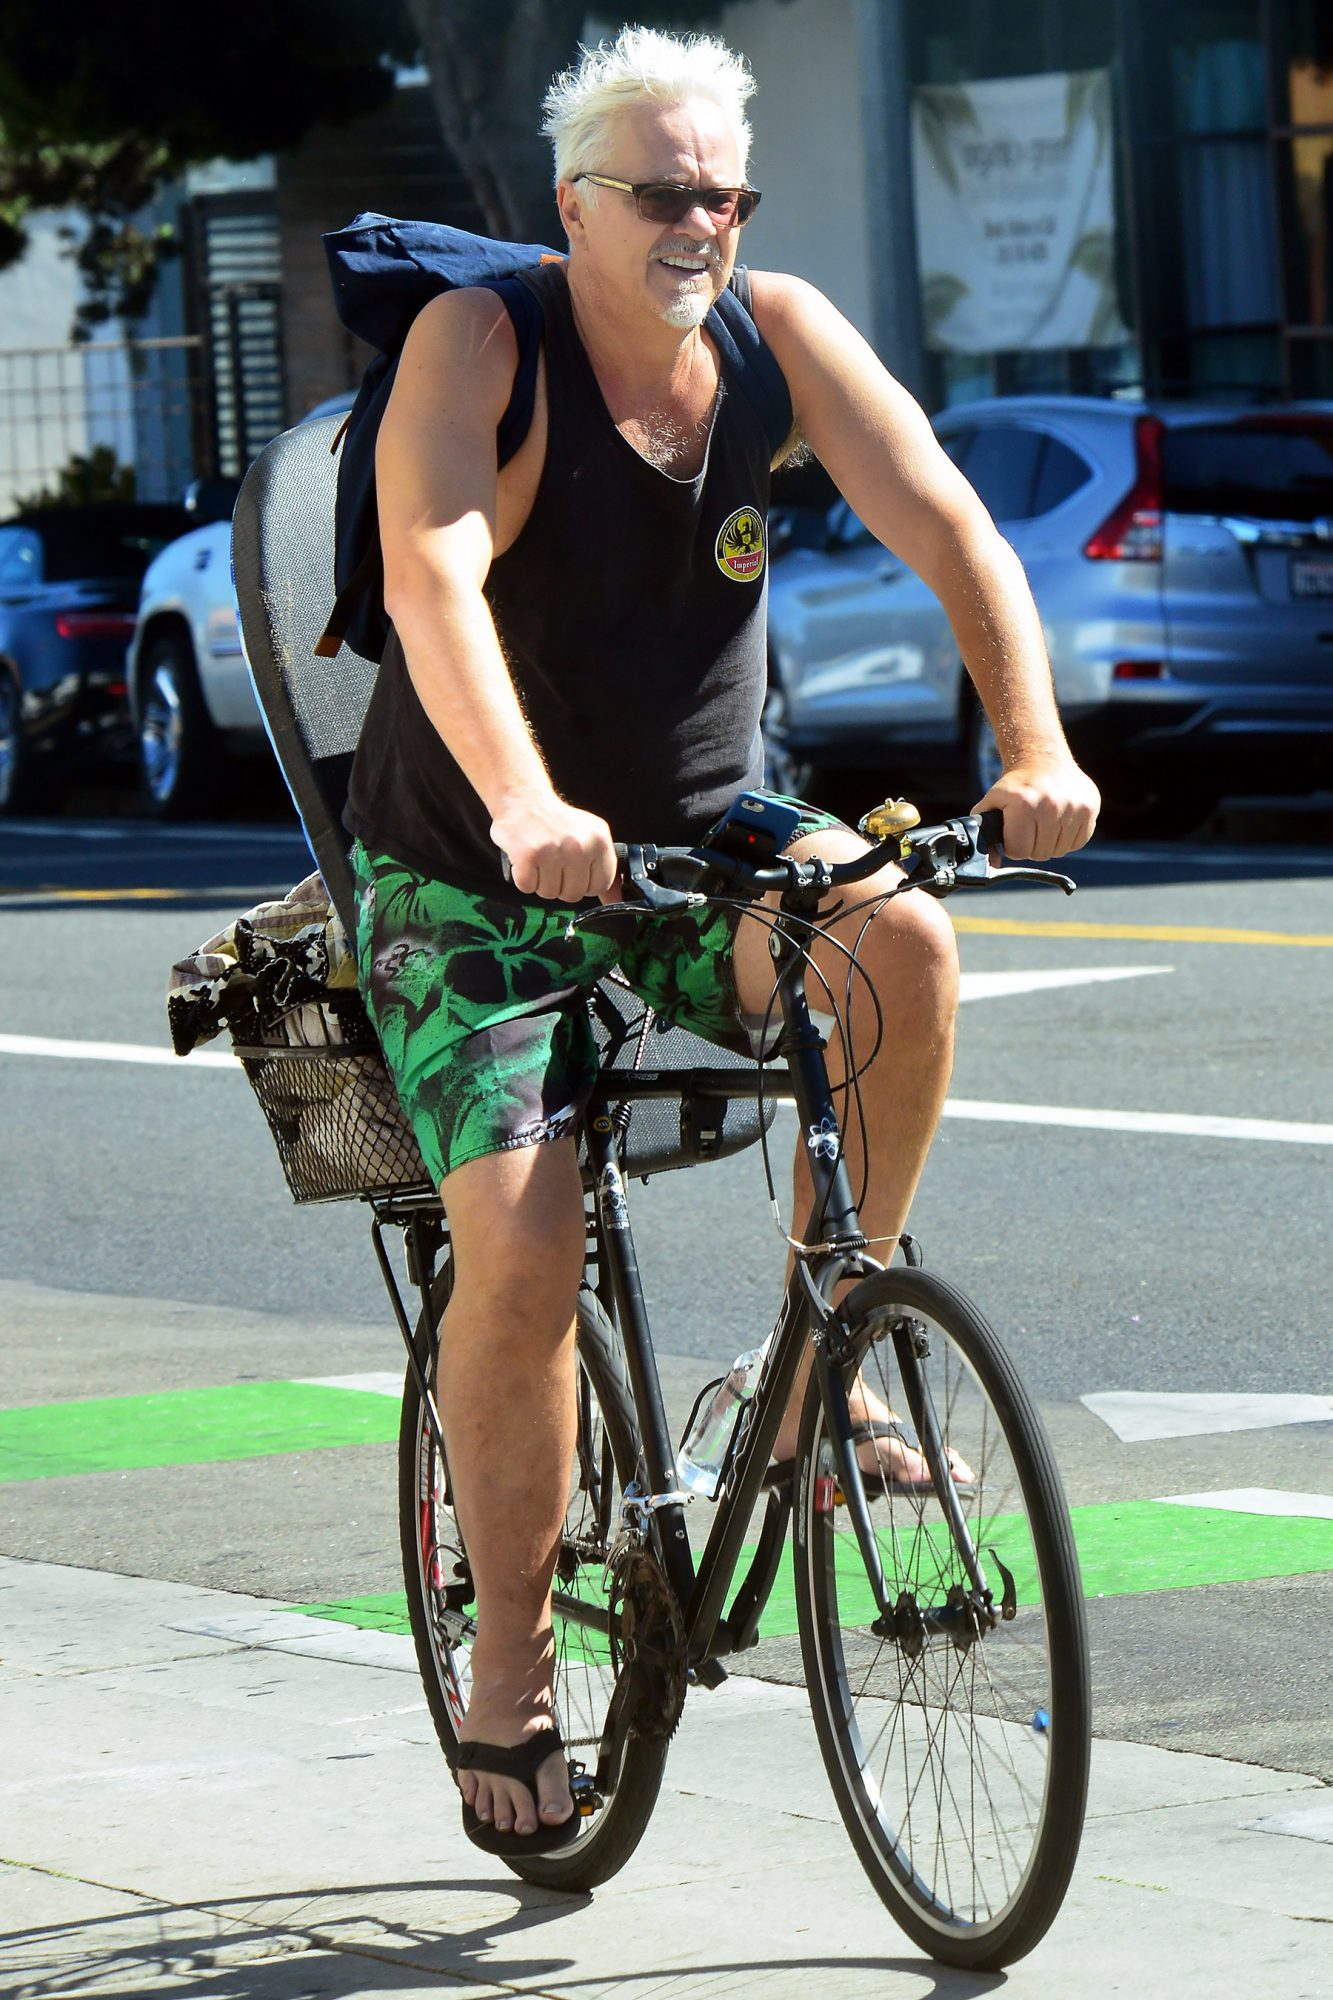 EXCLUSIVE: Tim Robbins embraces the sunny beach life style as he is spotted riding his bike on his way to go Boogie boarding in Santa Monica, Ca